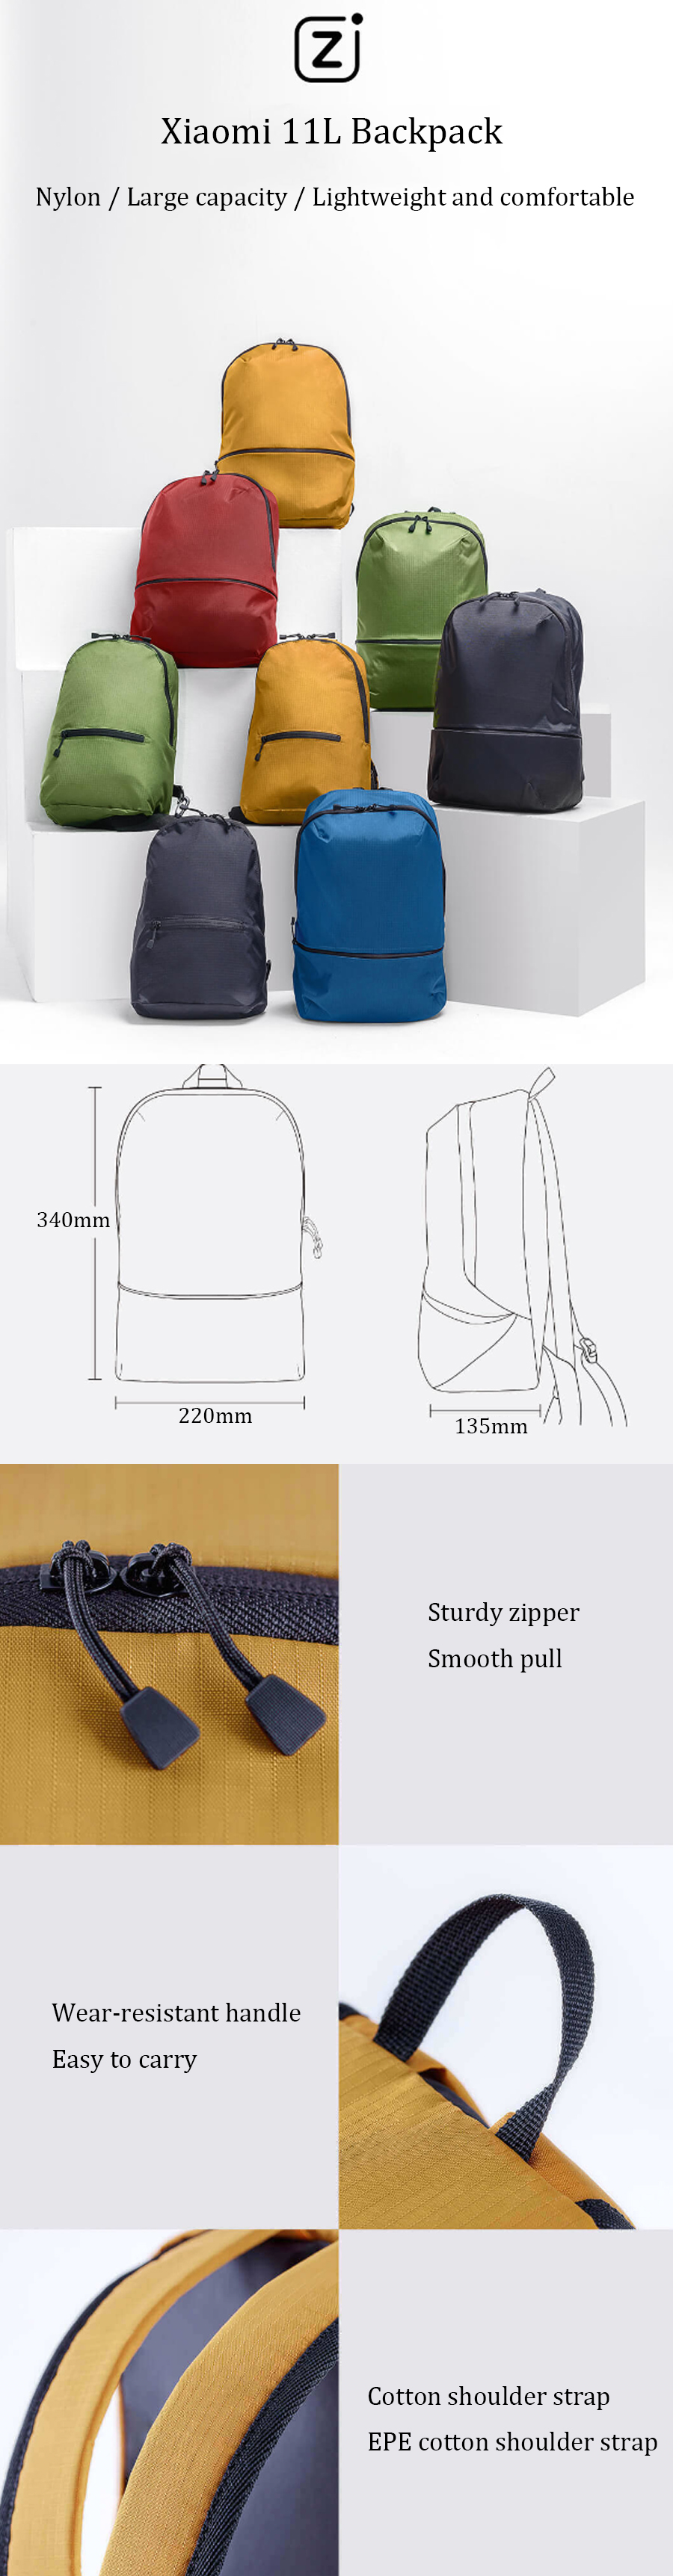 Xiaomi 11L Backpack 5 Colors Level 4 Waterproof Nylon 150g Lightweight Shoulder Bag For 14inch Laptop Camping Travel